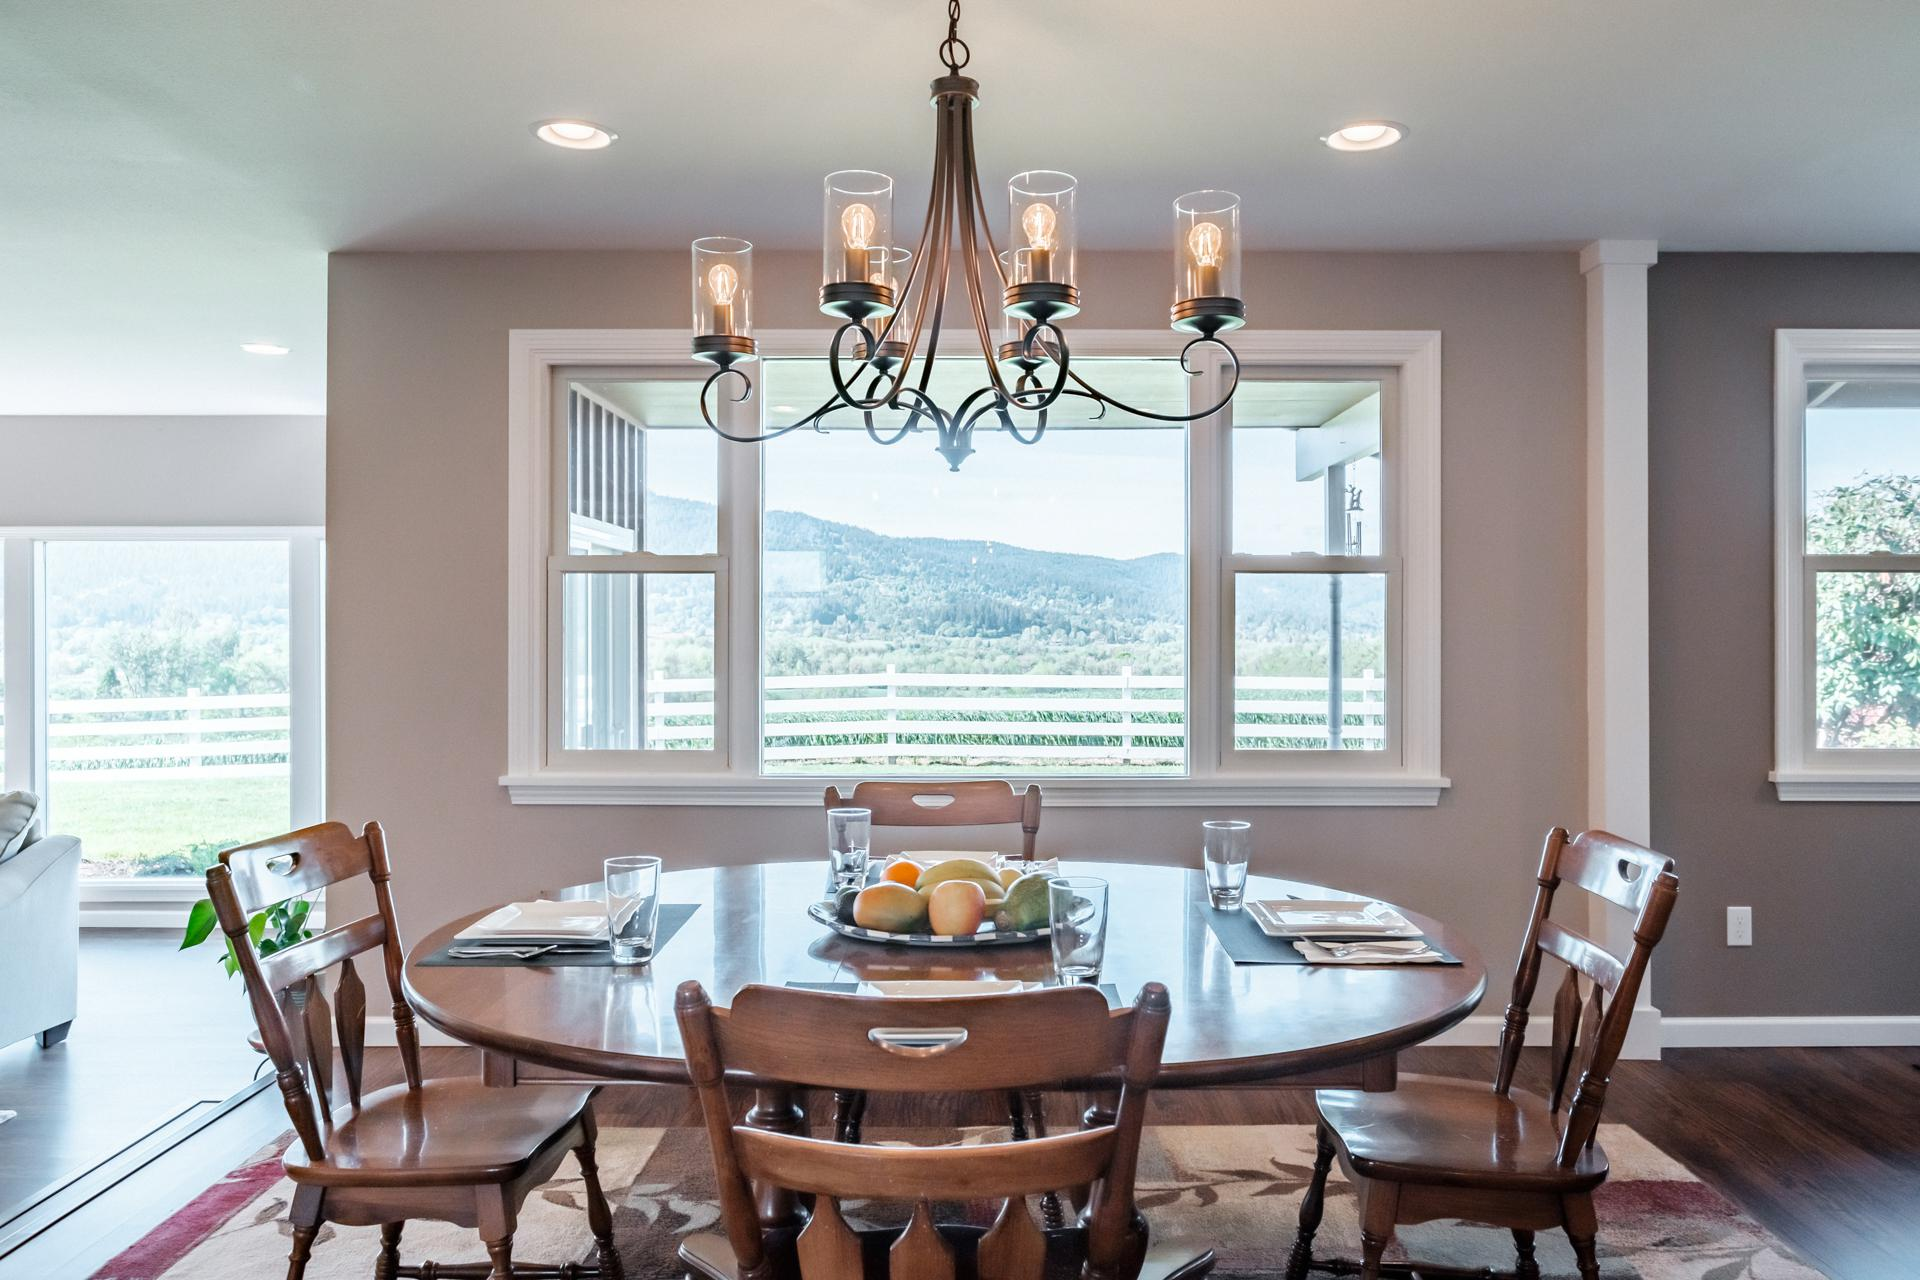 Sit down for a meal and enjoy the view of Vineyard Mountain